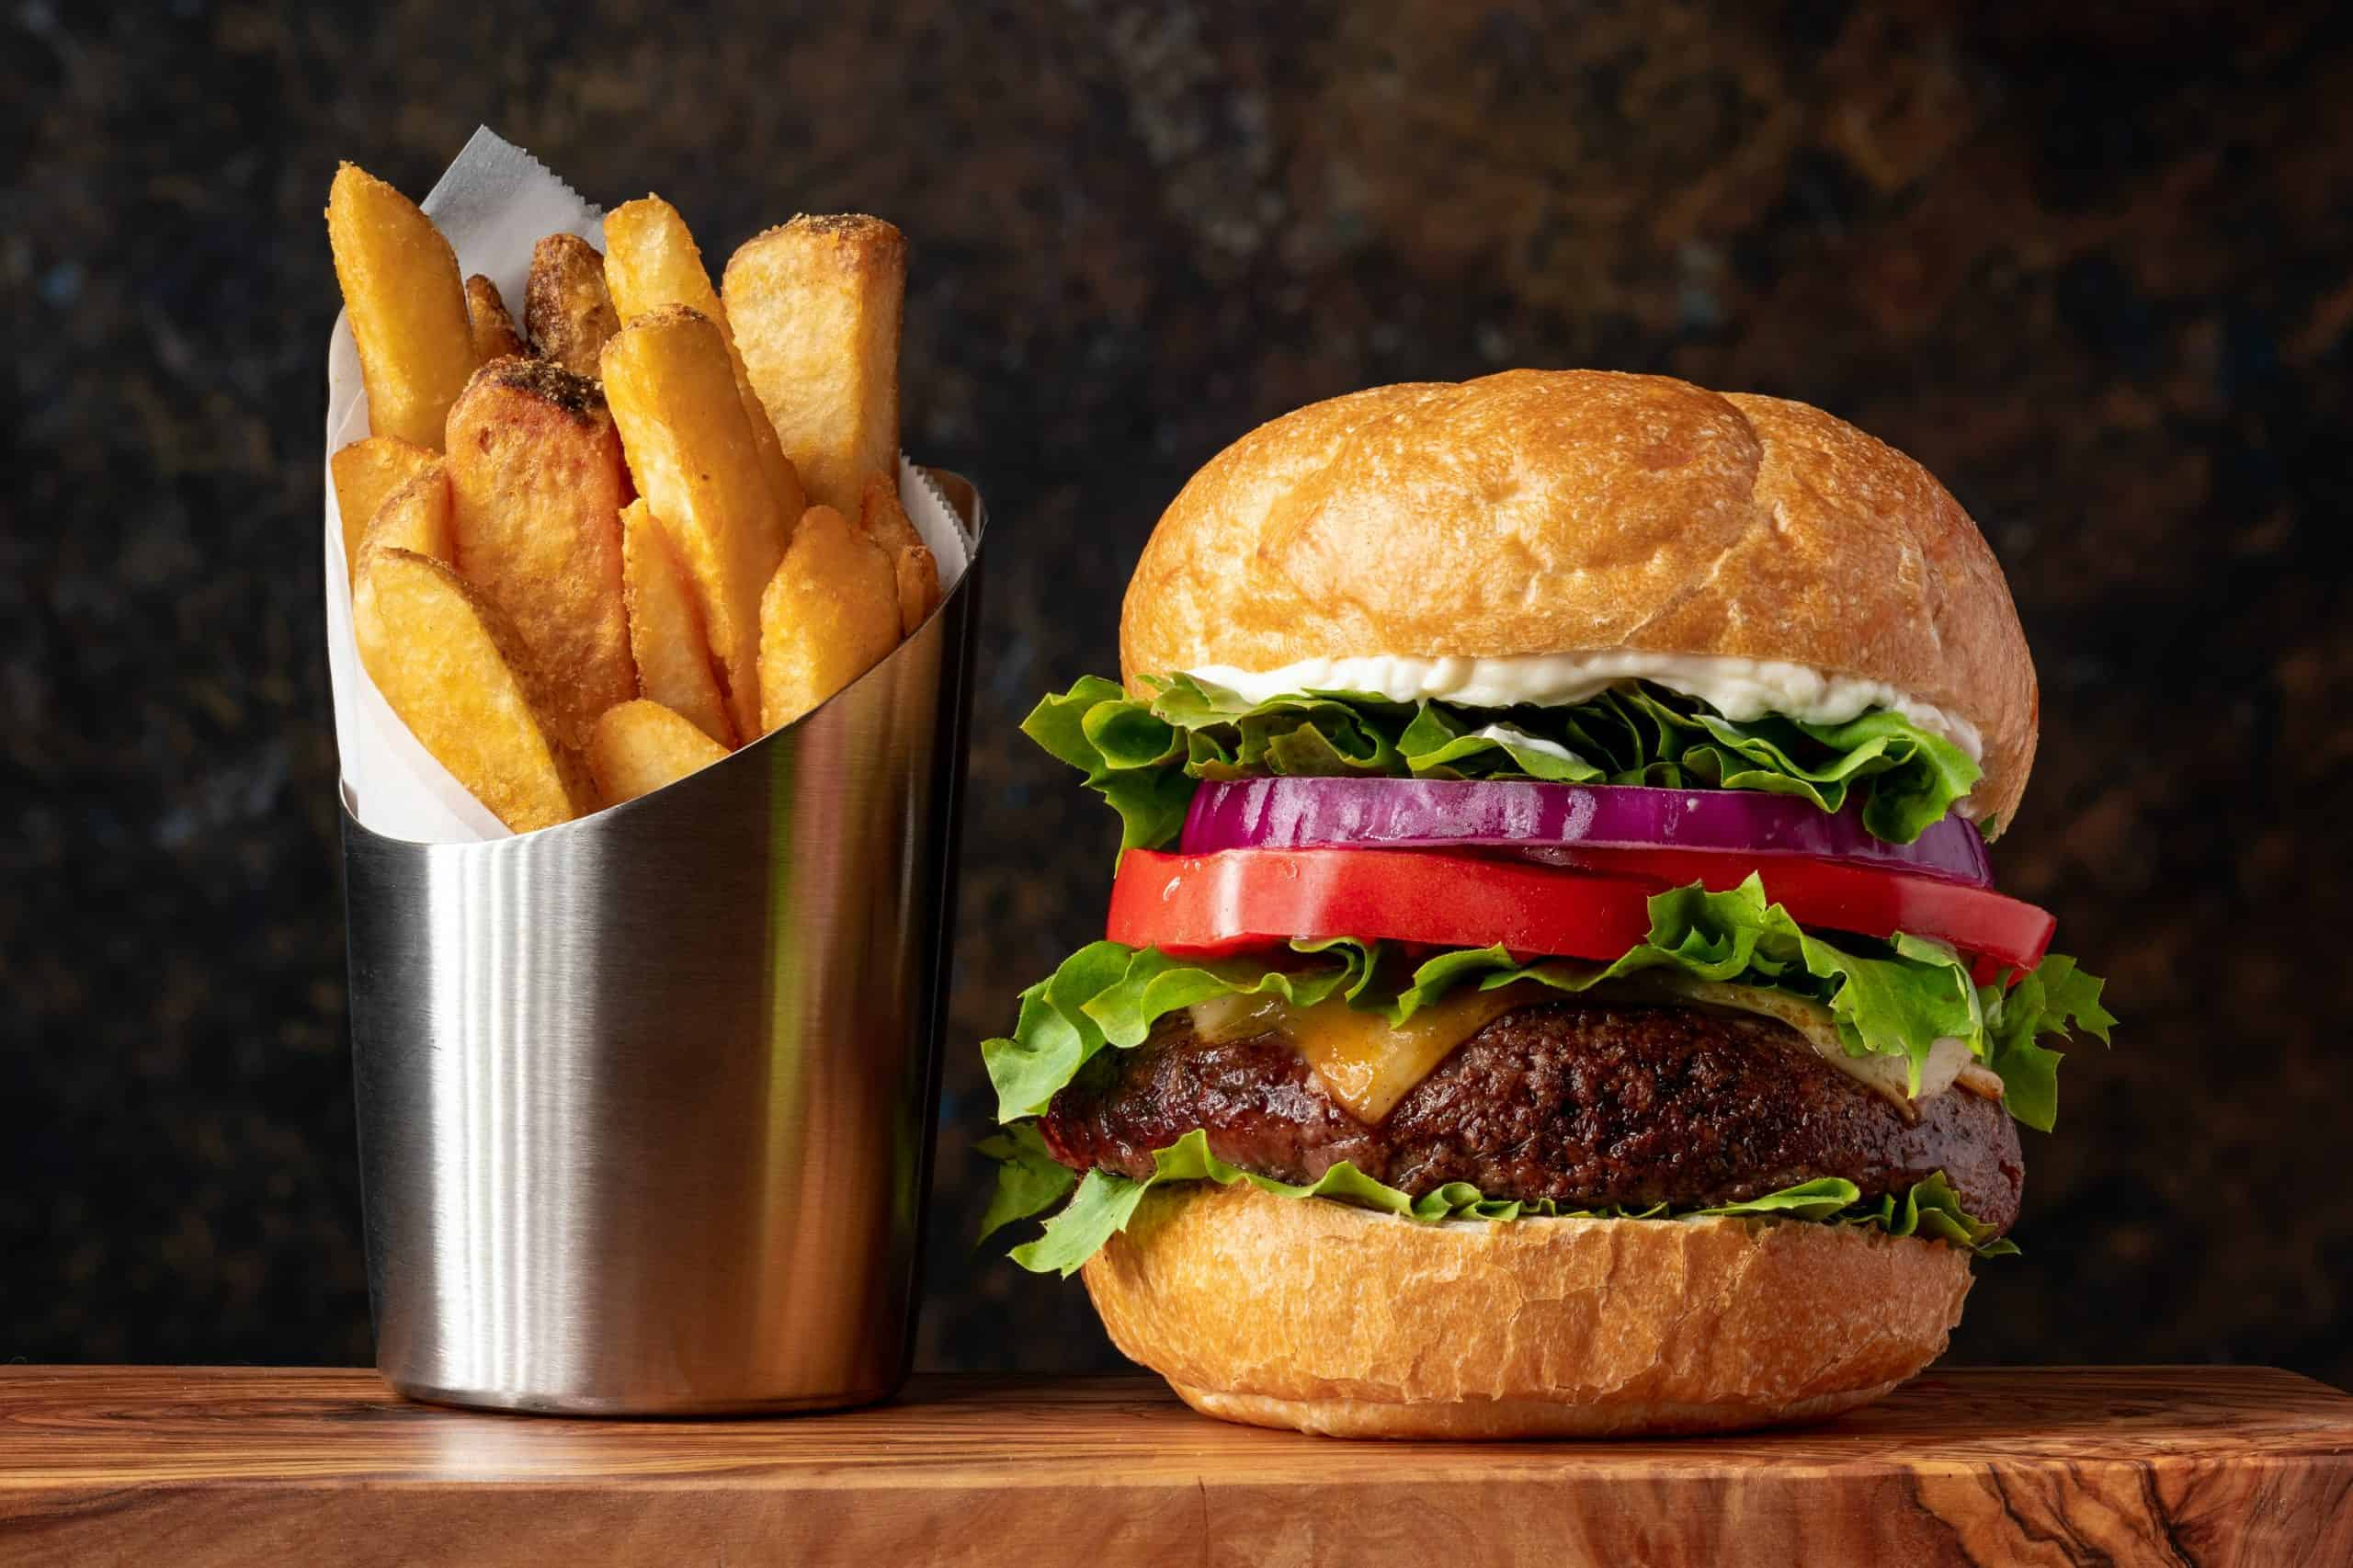 Hamburger day deals - Picture of cheeseburger with lettuce, tomato and red onion next to metal container of thick steak fries